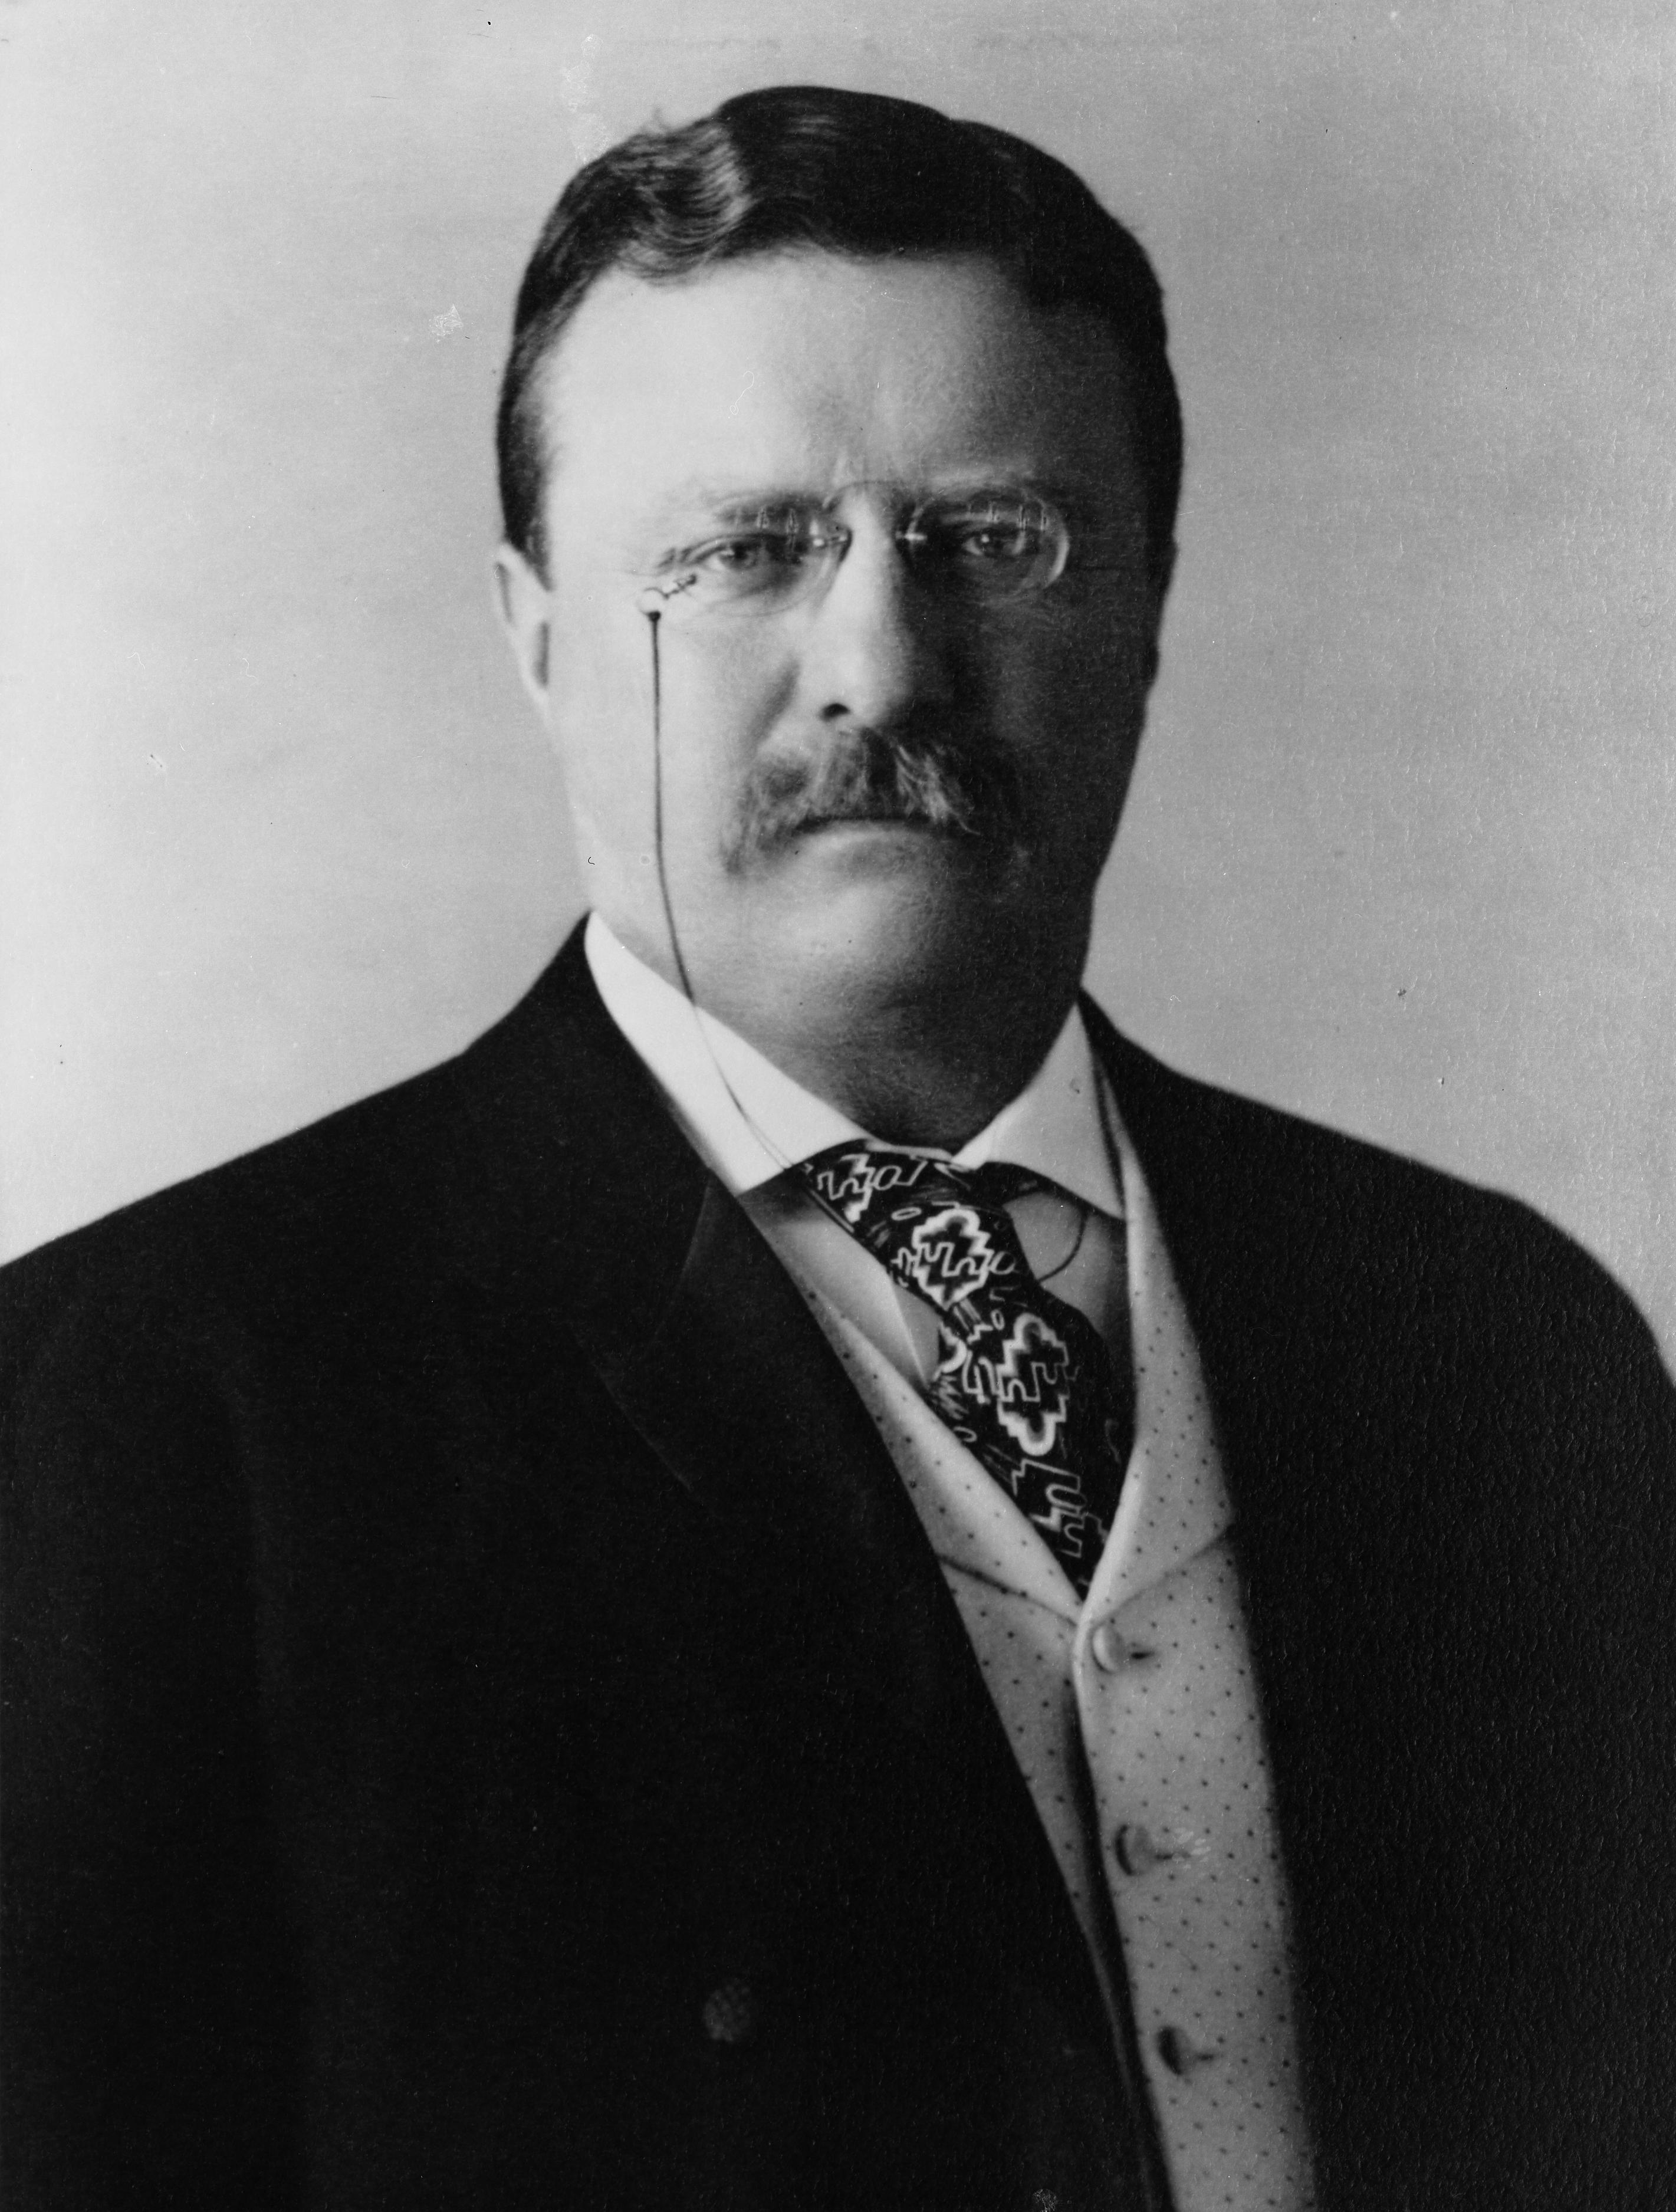 Theodore Roosevelt Vice President